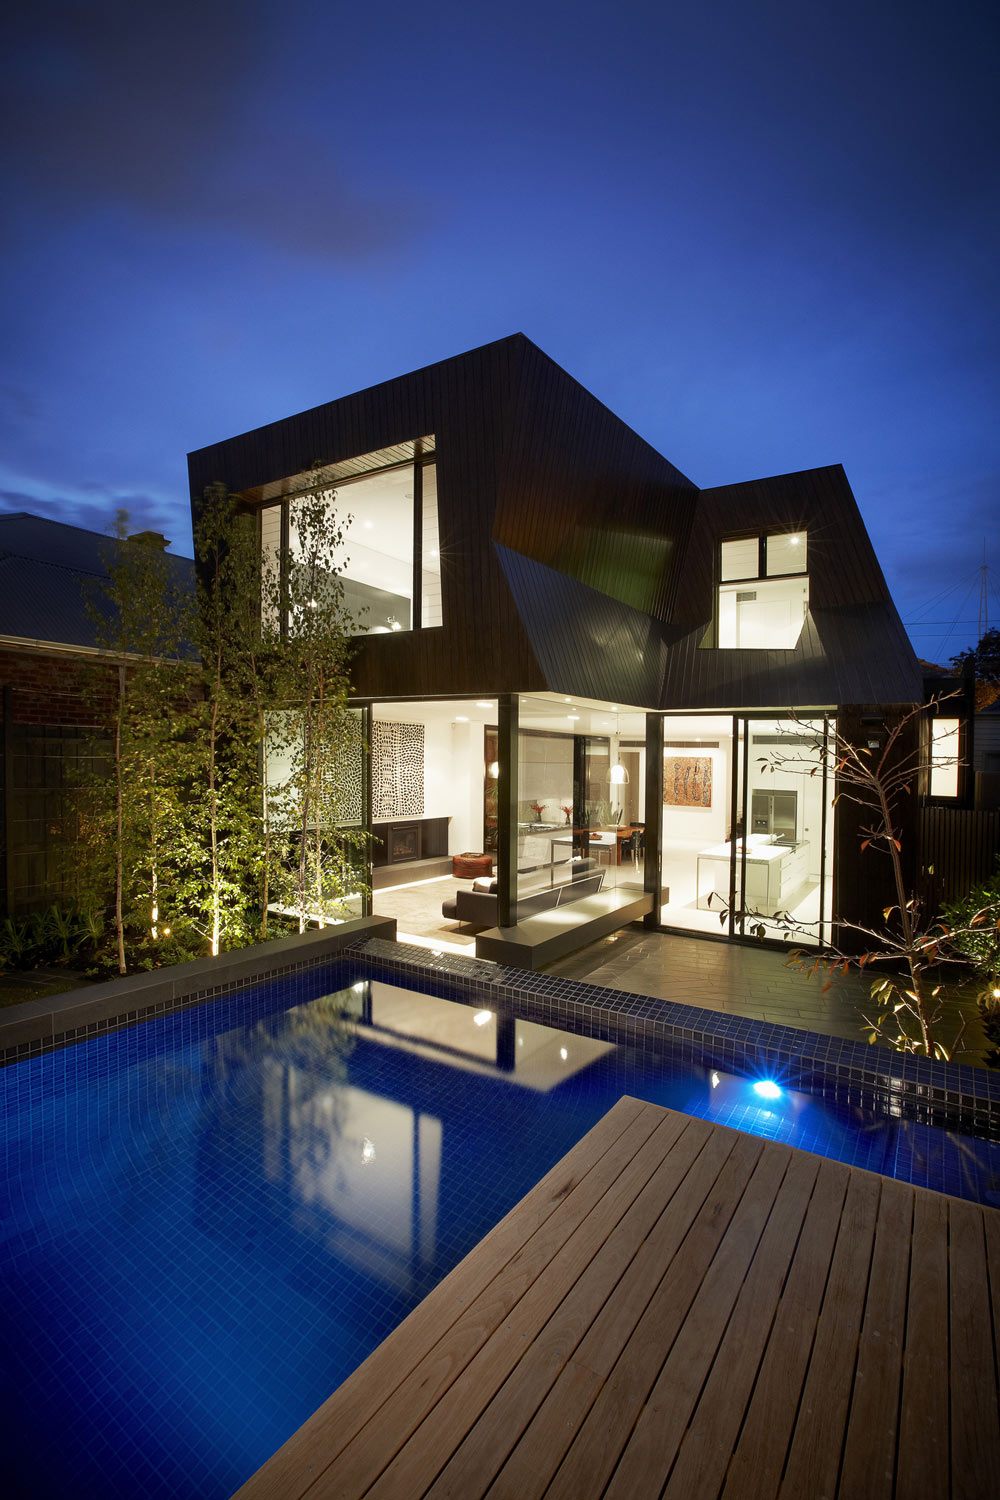 Enclave house in melbourne australia by bkk architects for Modern house designs australia